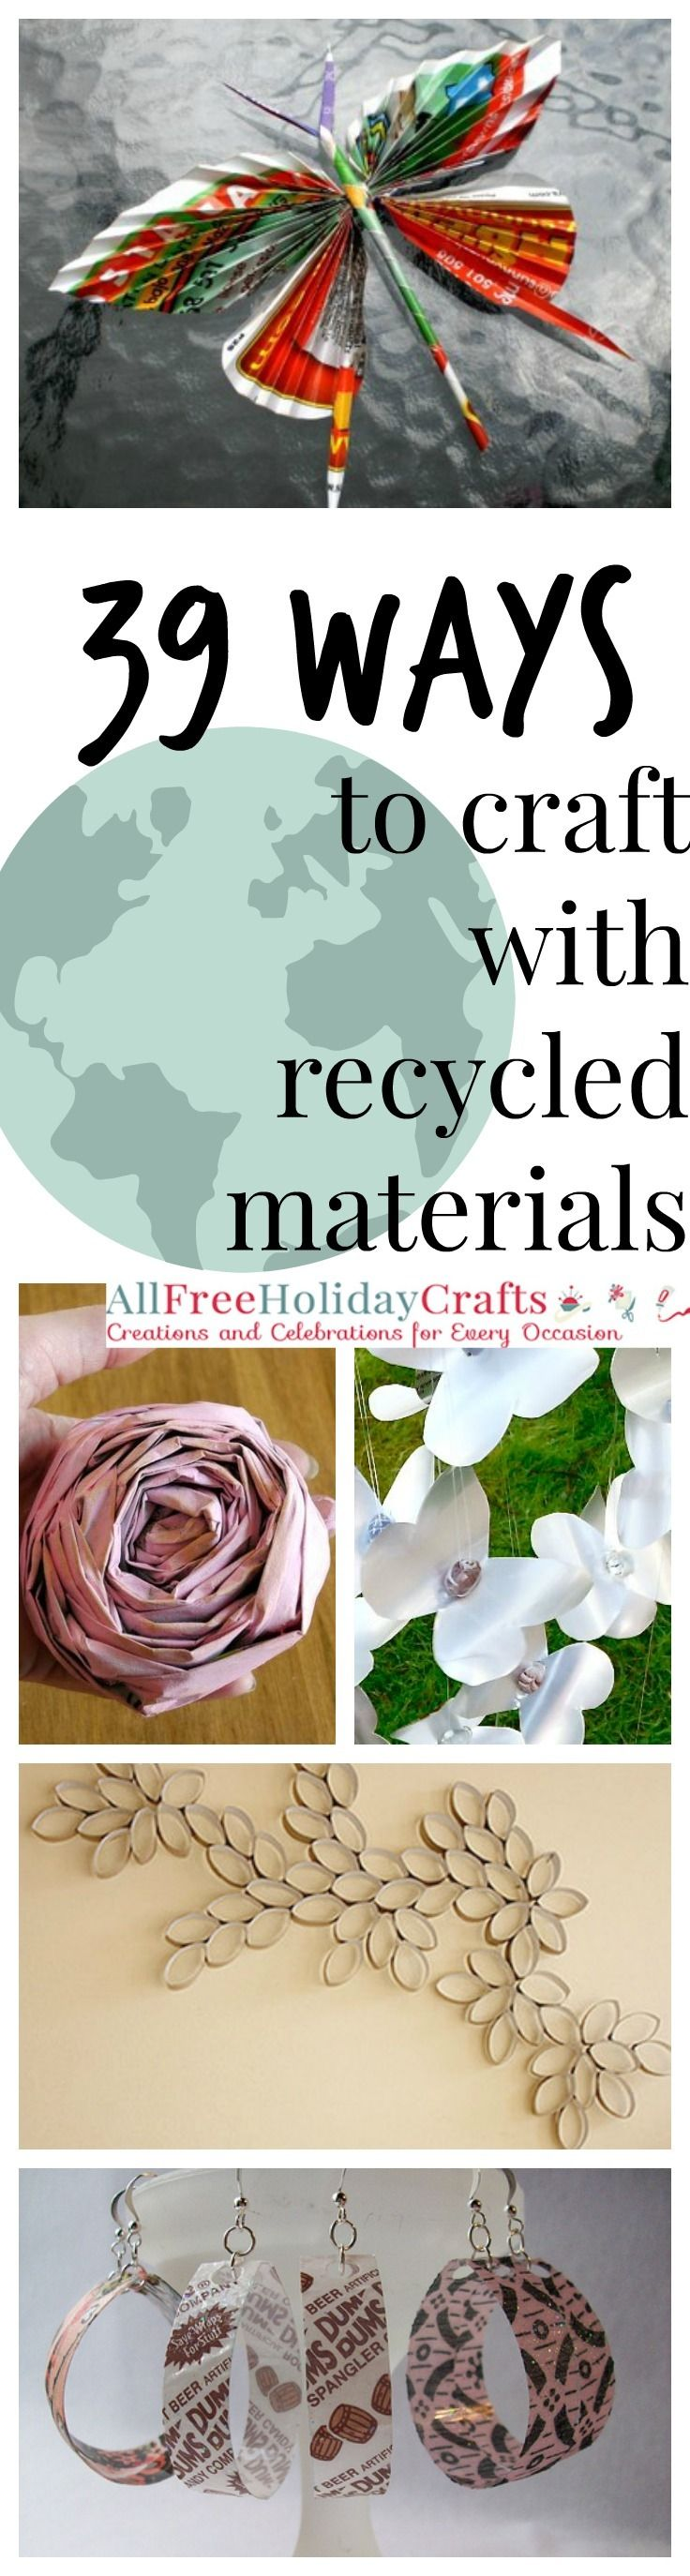 25 best recycled materials ideas on pinterest diy fairy for Recycled materials ideas